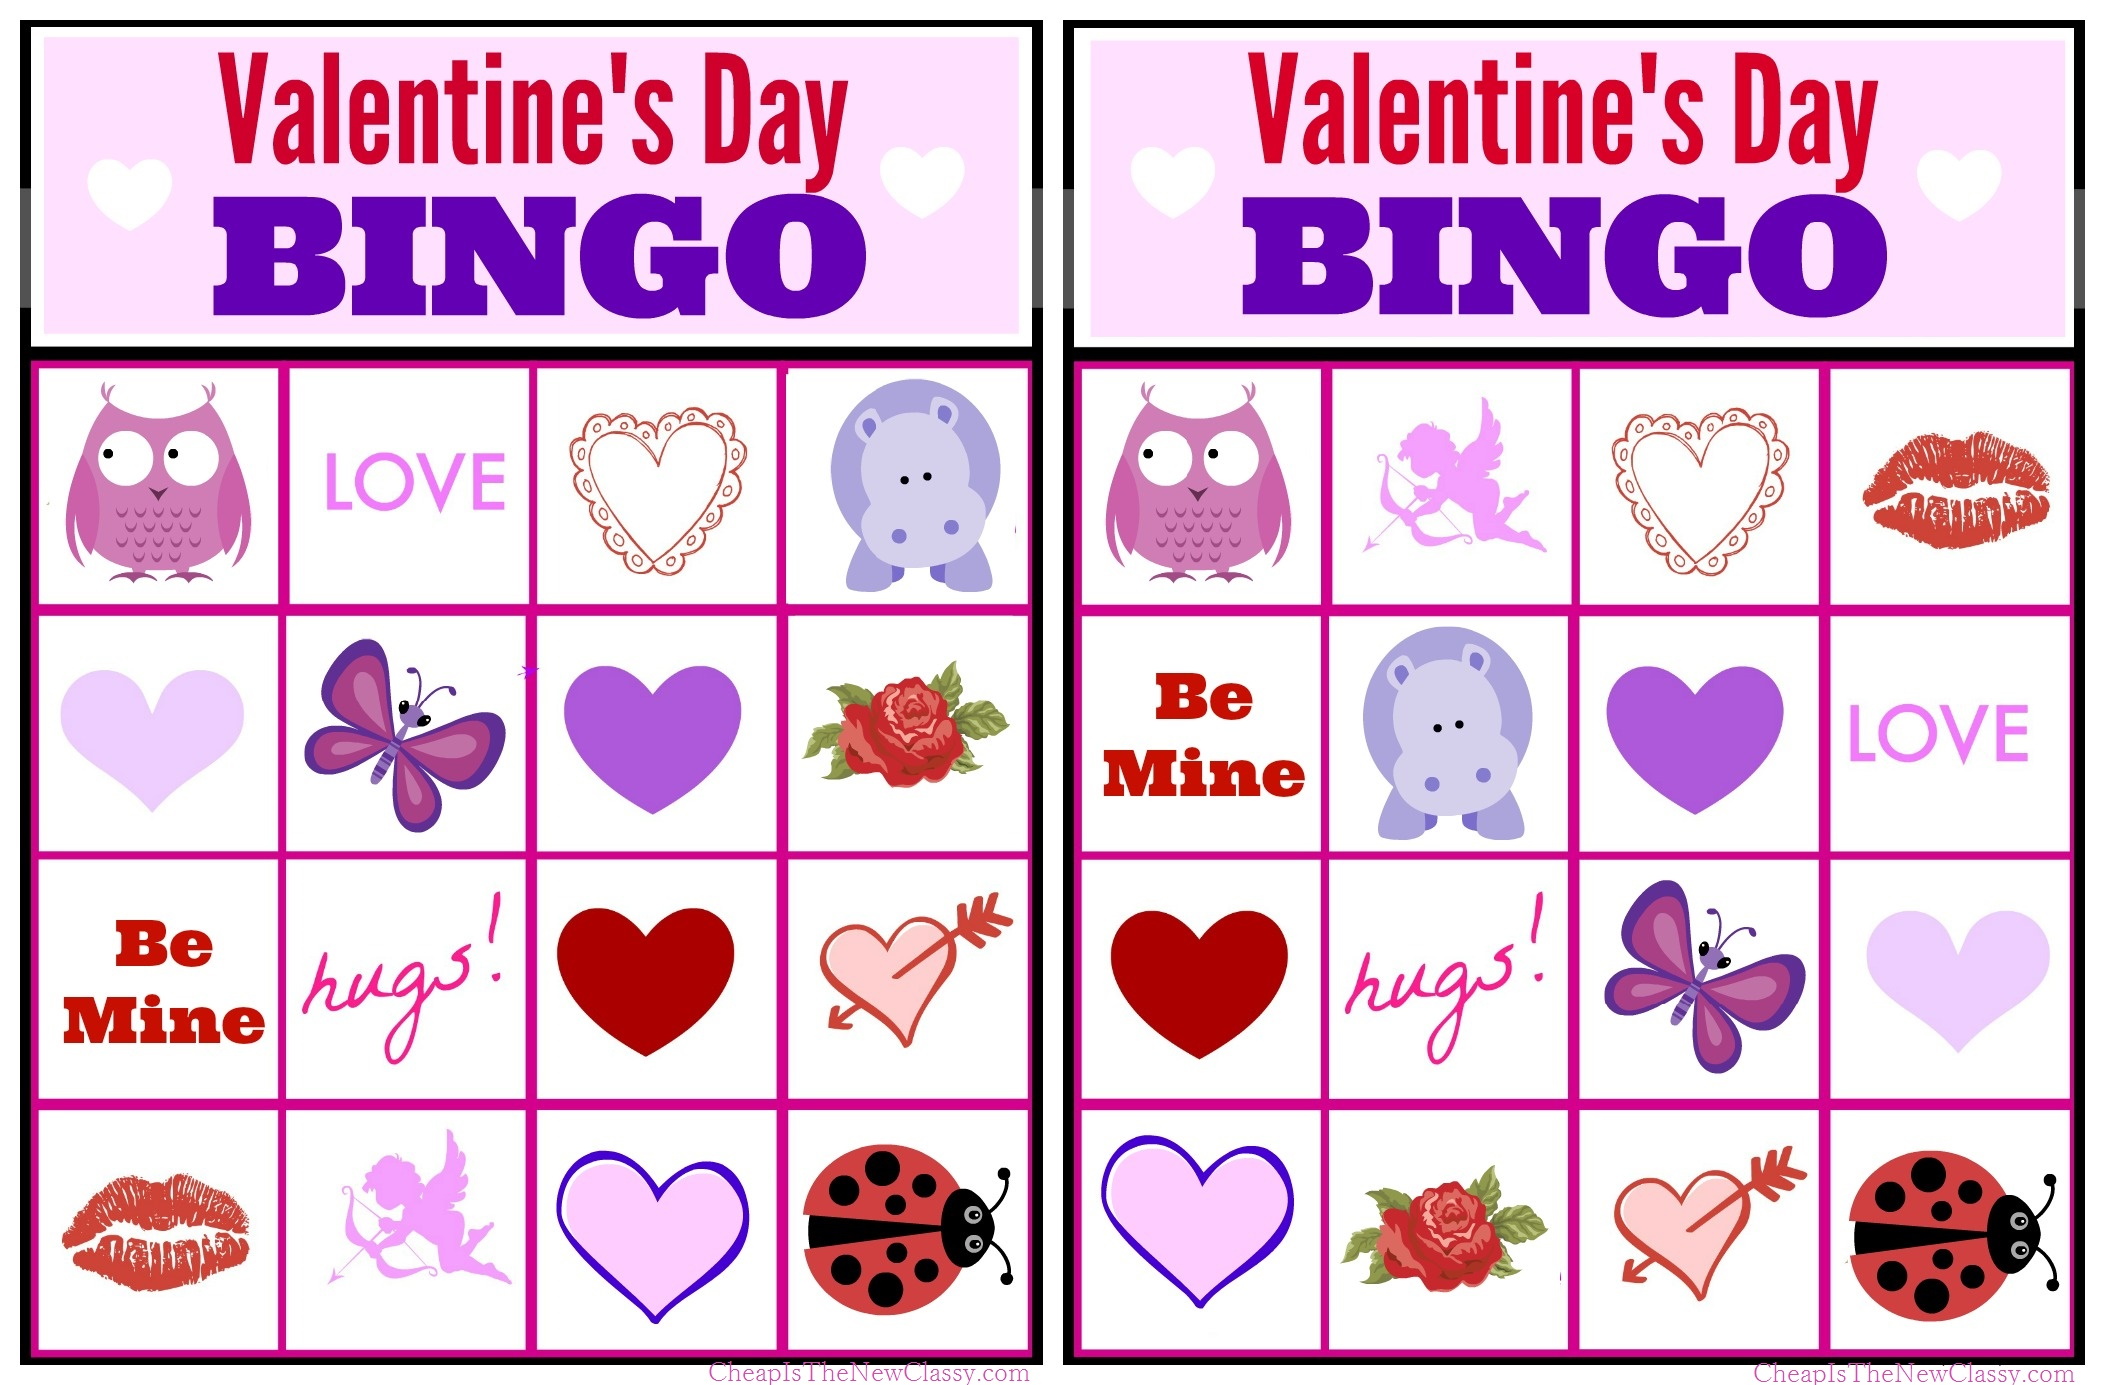 This is an image of Valentine Bingo Free Printable with regard to custom card